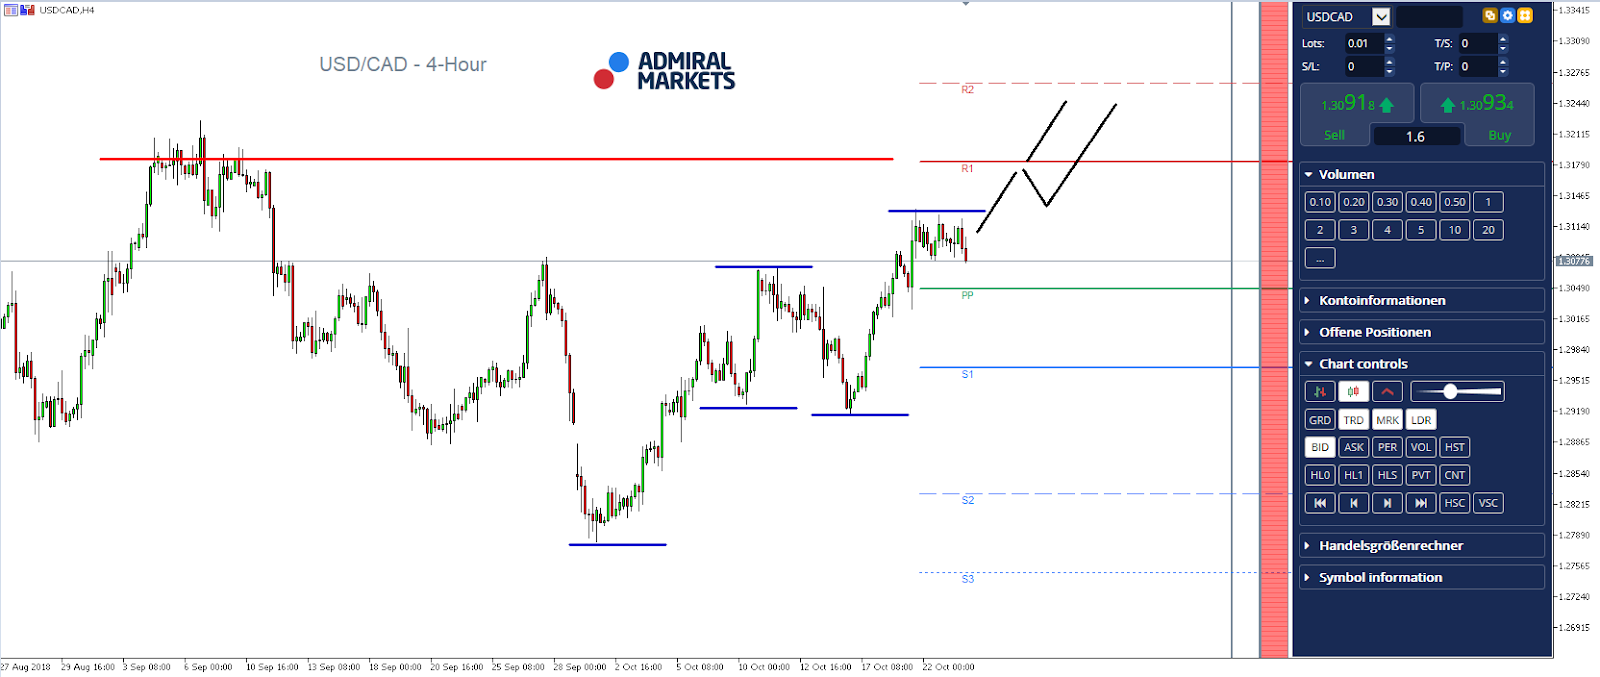 USDCAD 4 Hour